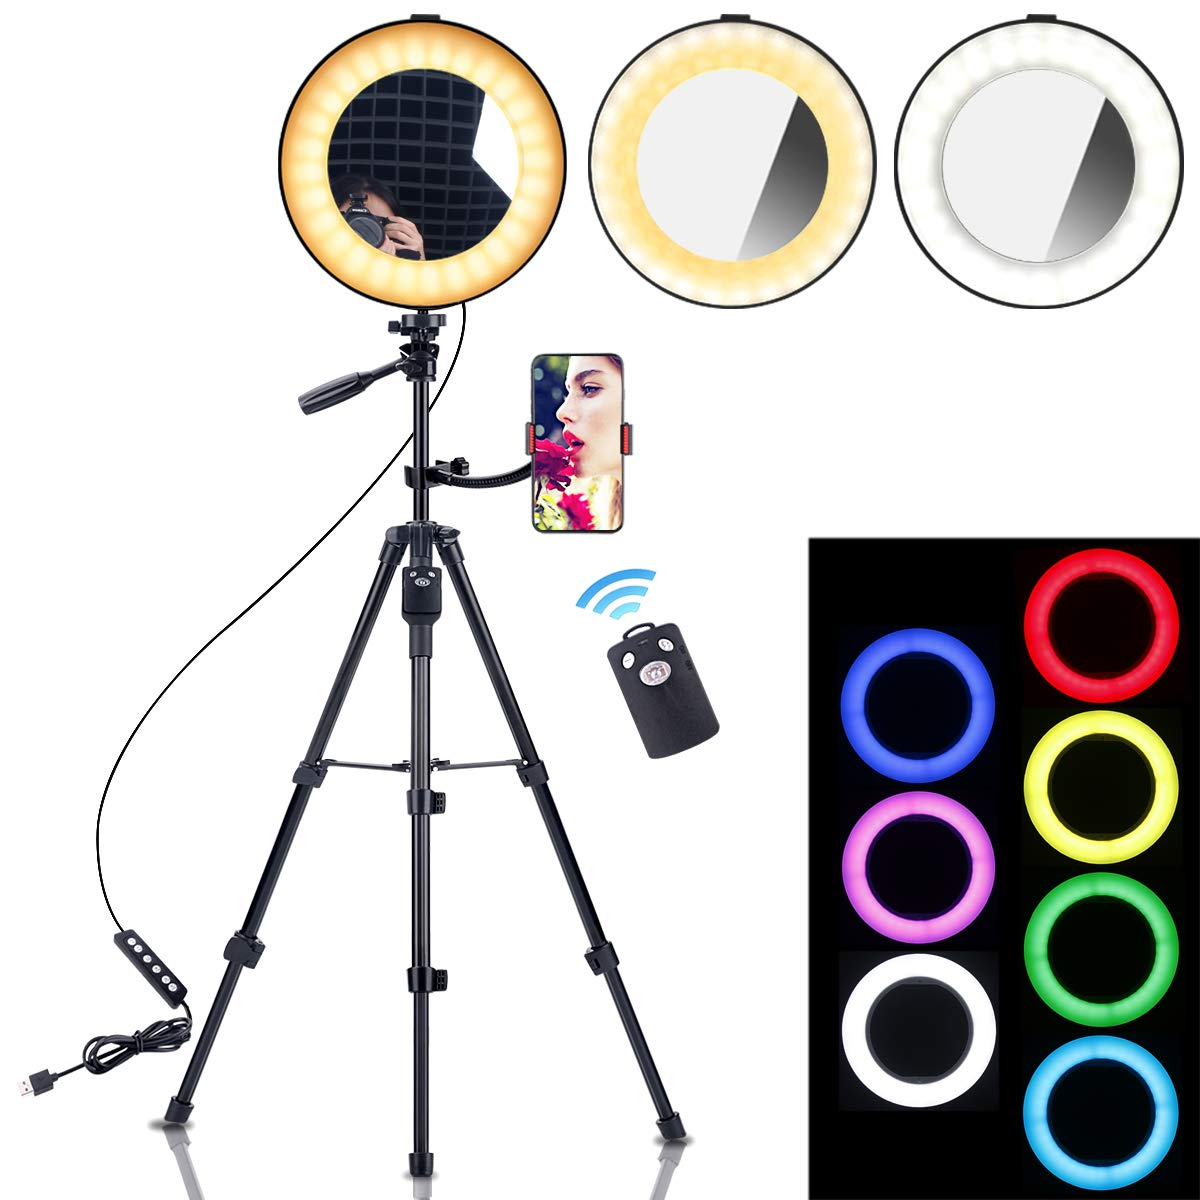 B-Land 8'' Ring Light with Tripod Stand & Phone Holder, Removable Makeup Mirror with Lights, Dimmable RGB LED Selfie Ring Lights with Remote for Photos & YouTube Videos by B-Land